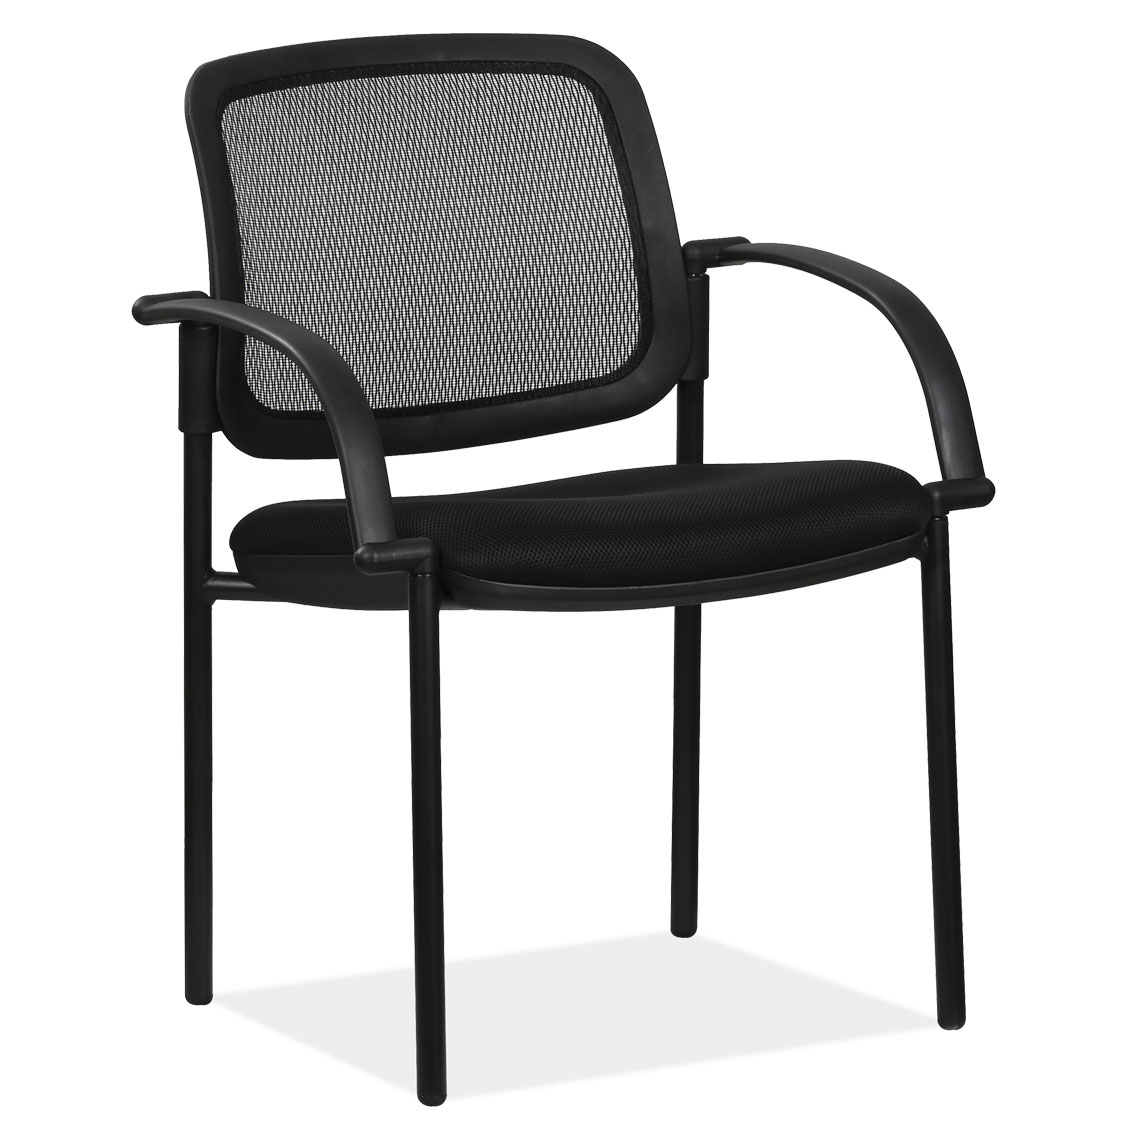 OfficeSource Encline Collection Mesh Back Side Chair